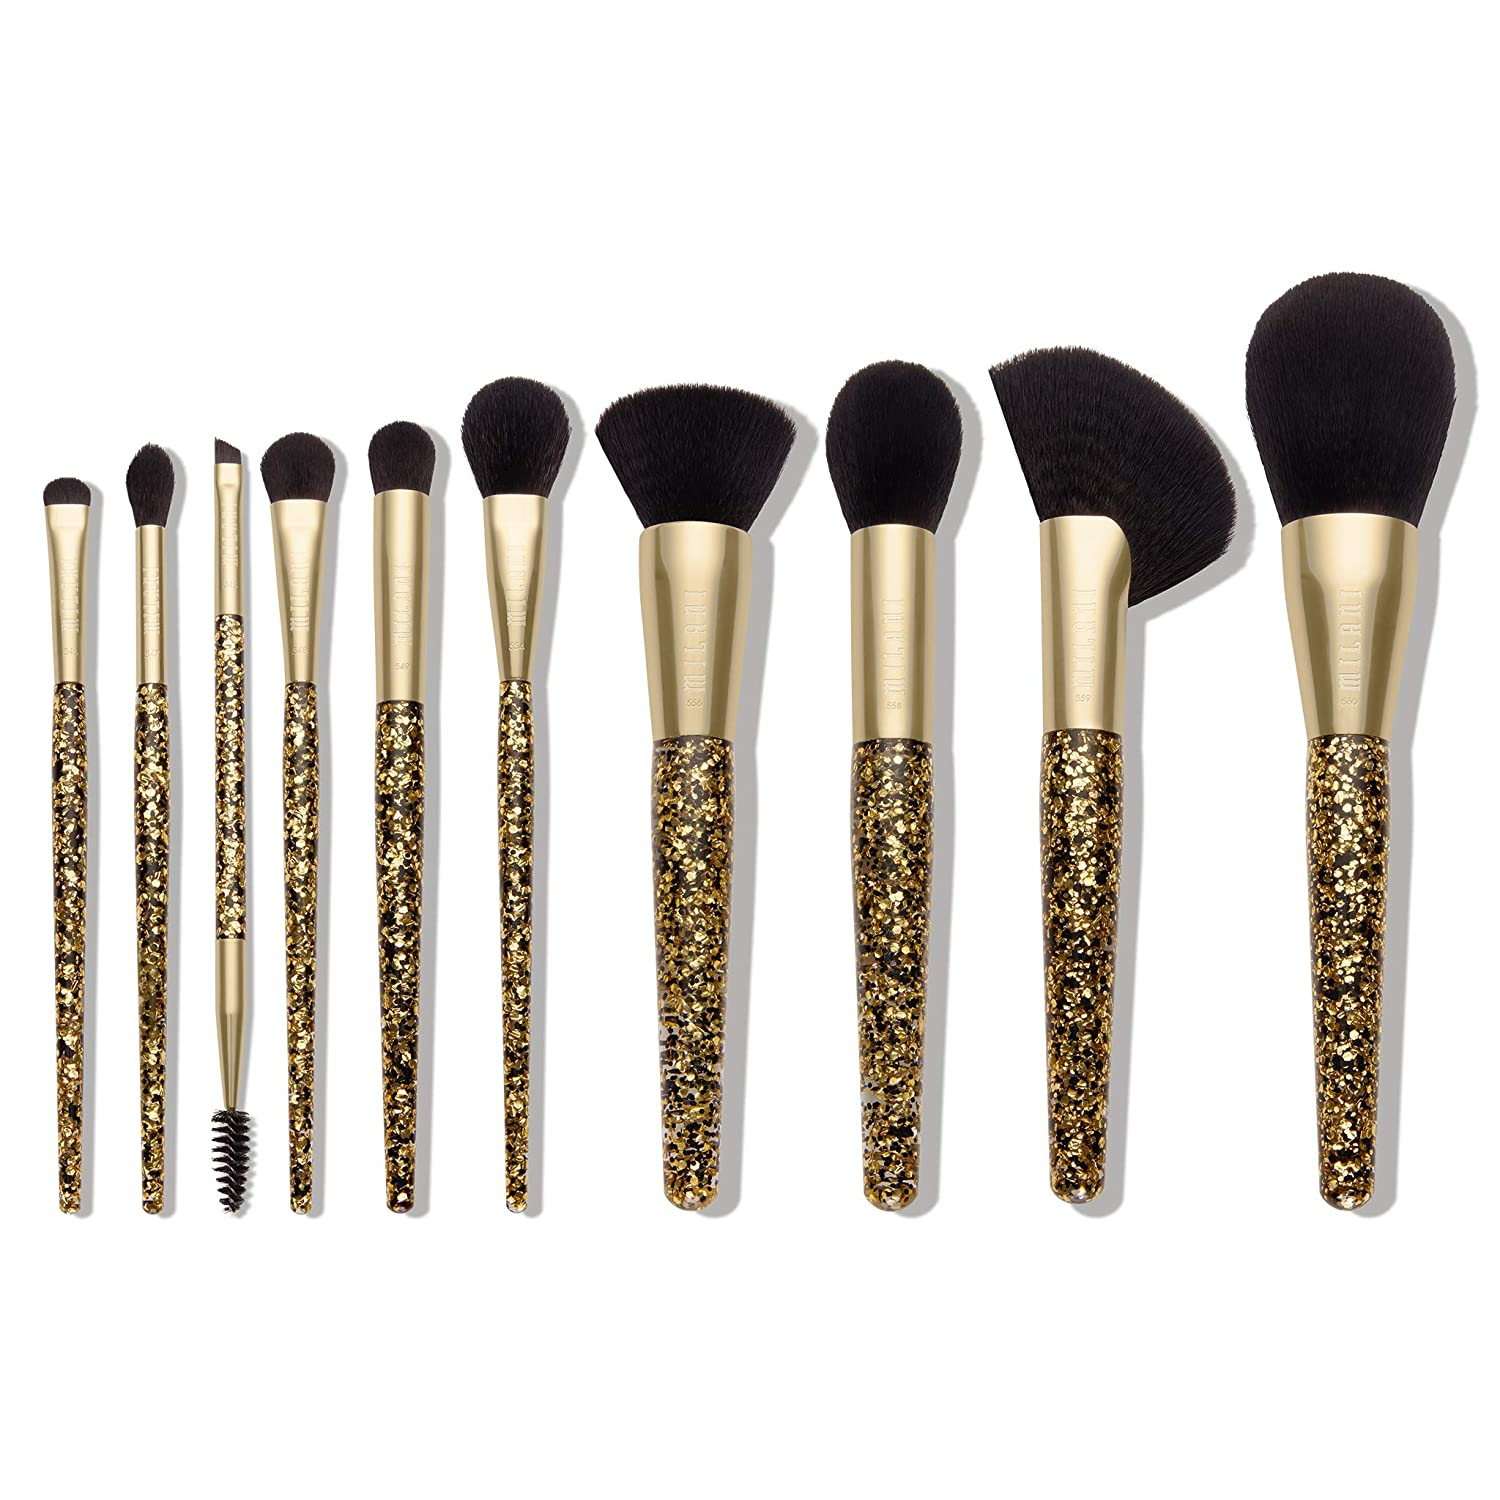 WHOLESALE MILANI LUXE BRUSH SET - 10 PIECE BRUSH SET - 36 PIECE LOT